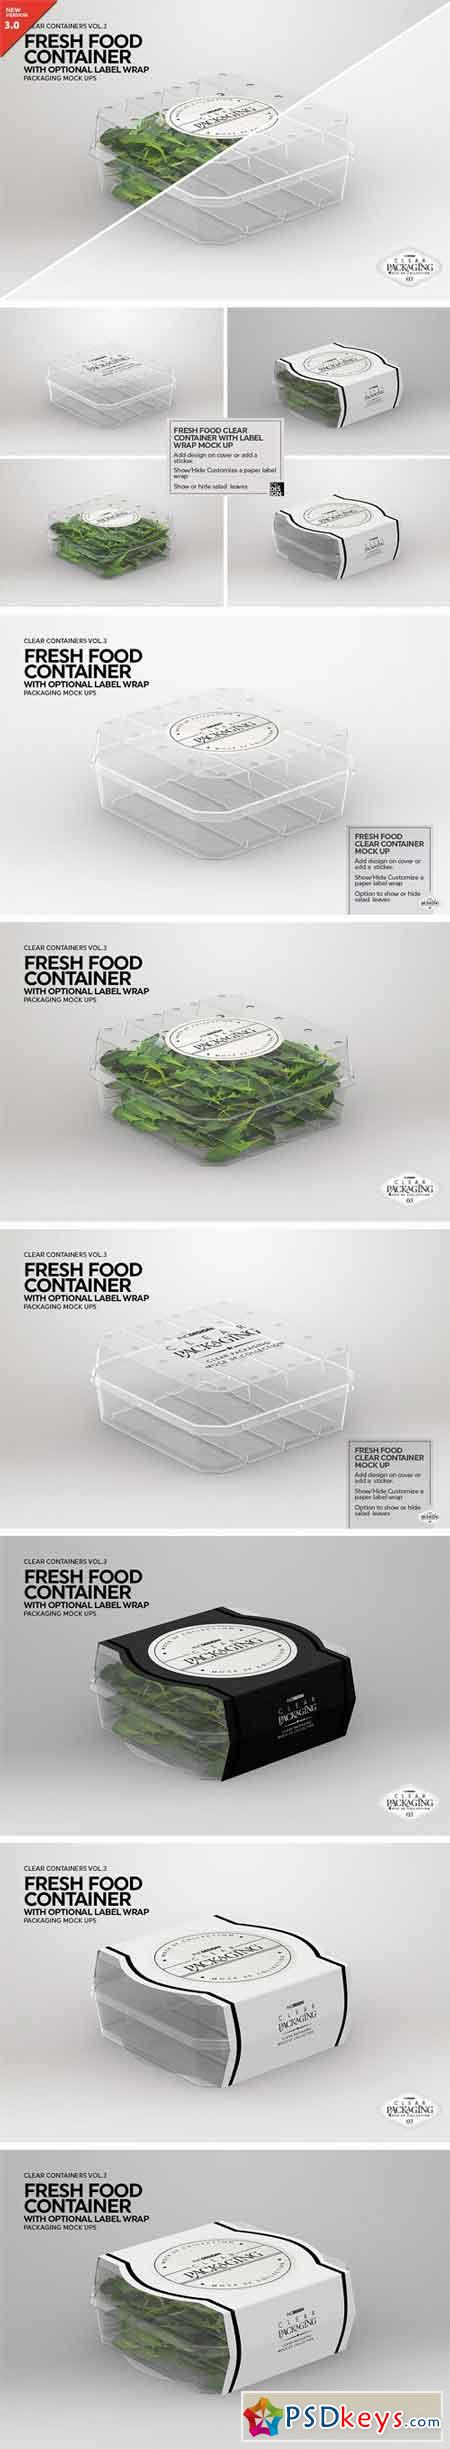 Clear Fresh Food Container MockUp 2022765